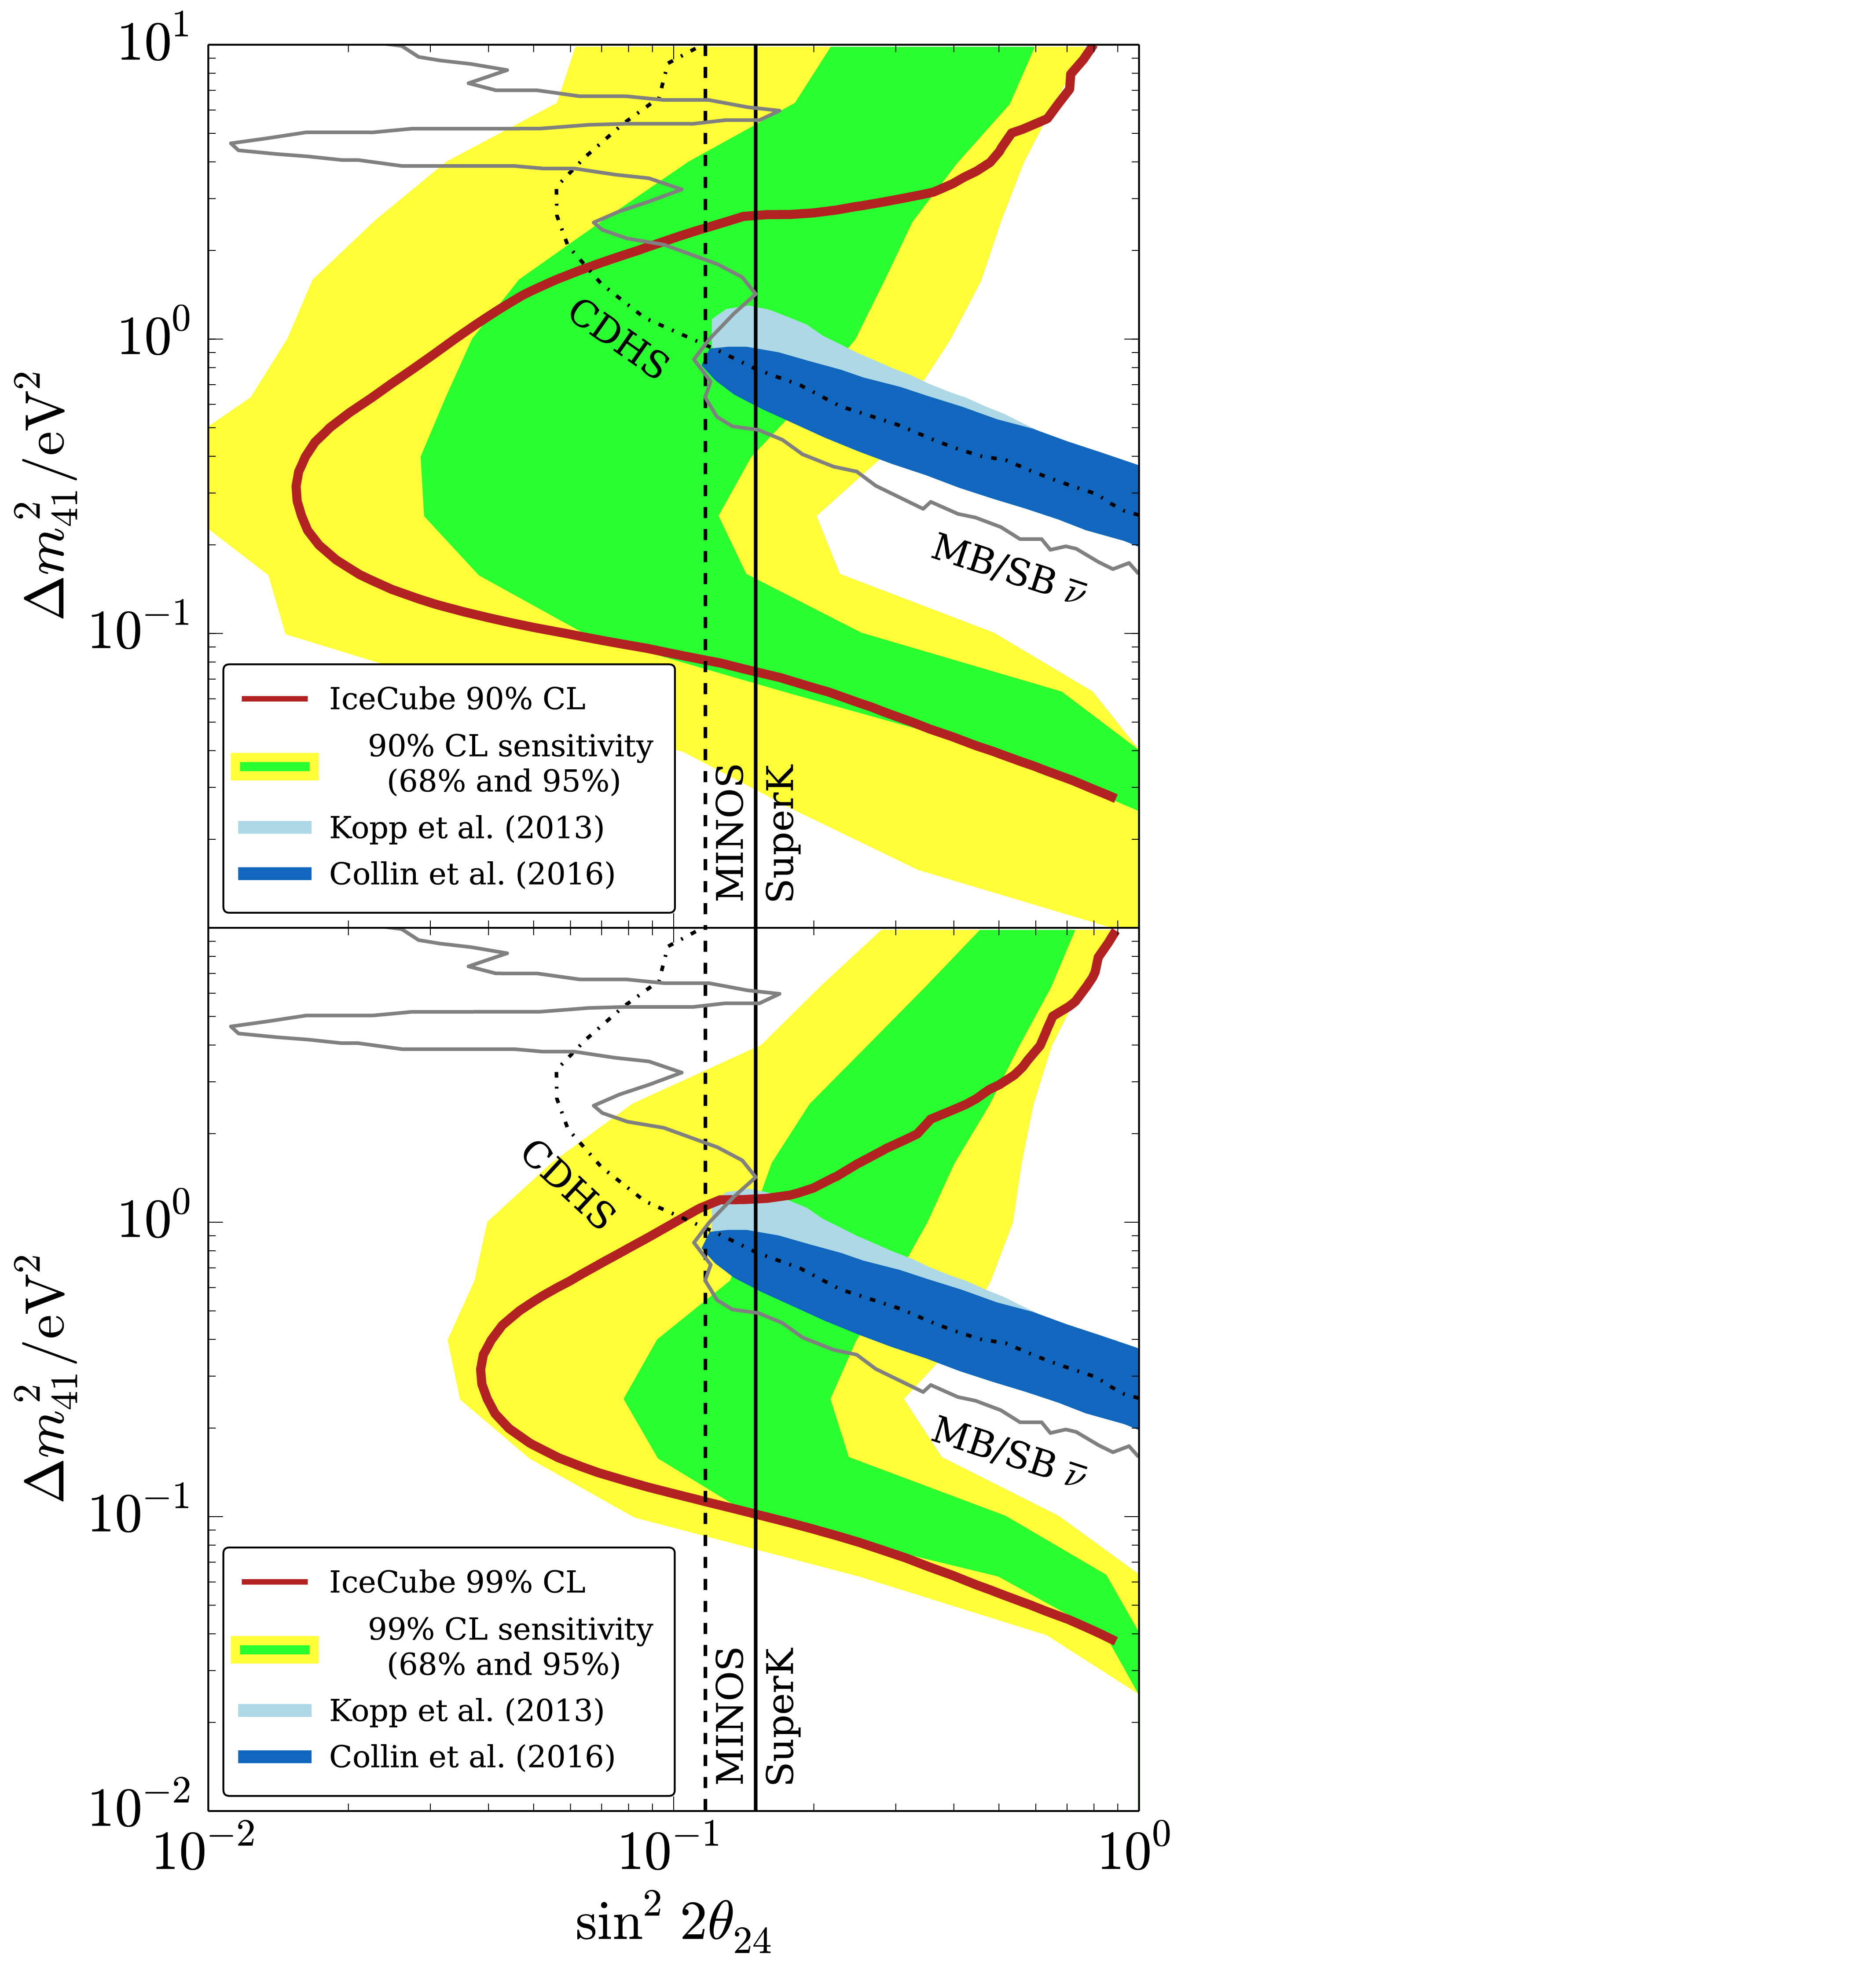 IceCube exclusion limits for light sterile neutrinos at 90% and 99% confidence levels